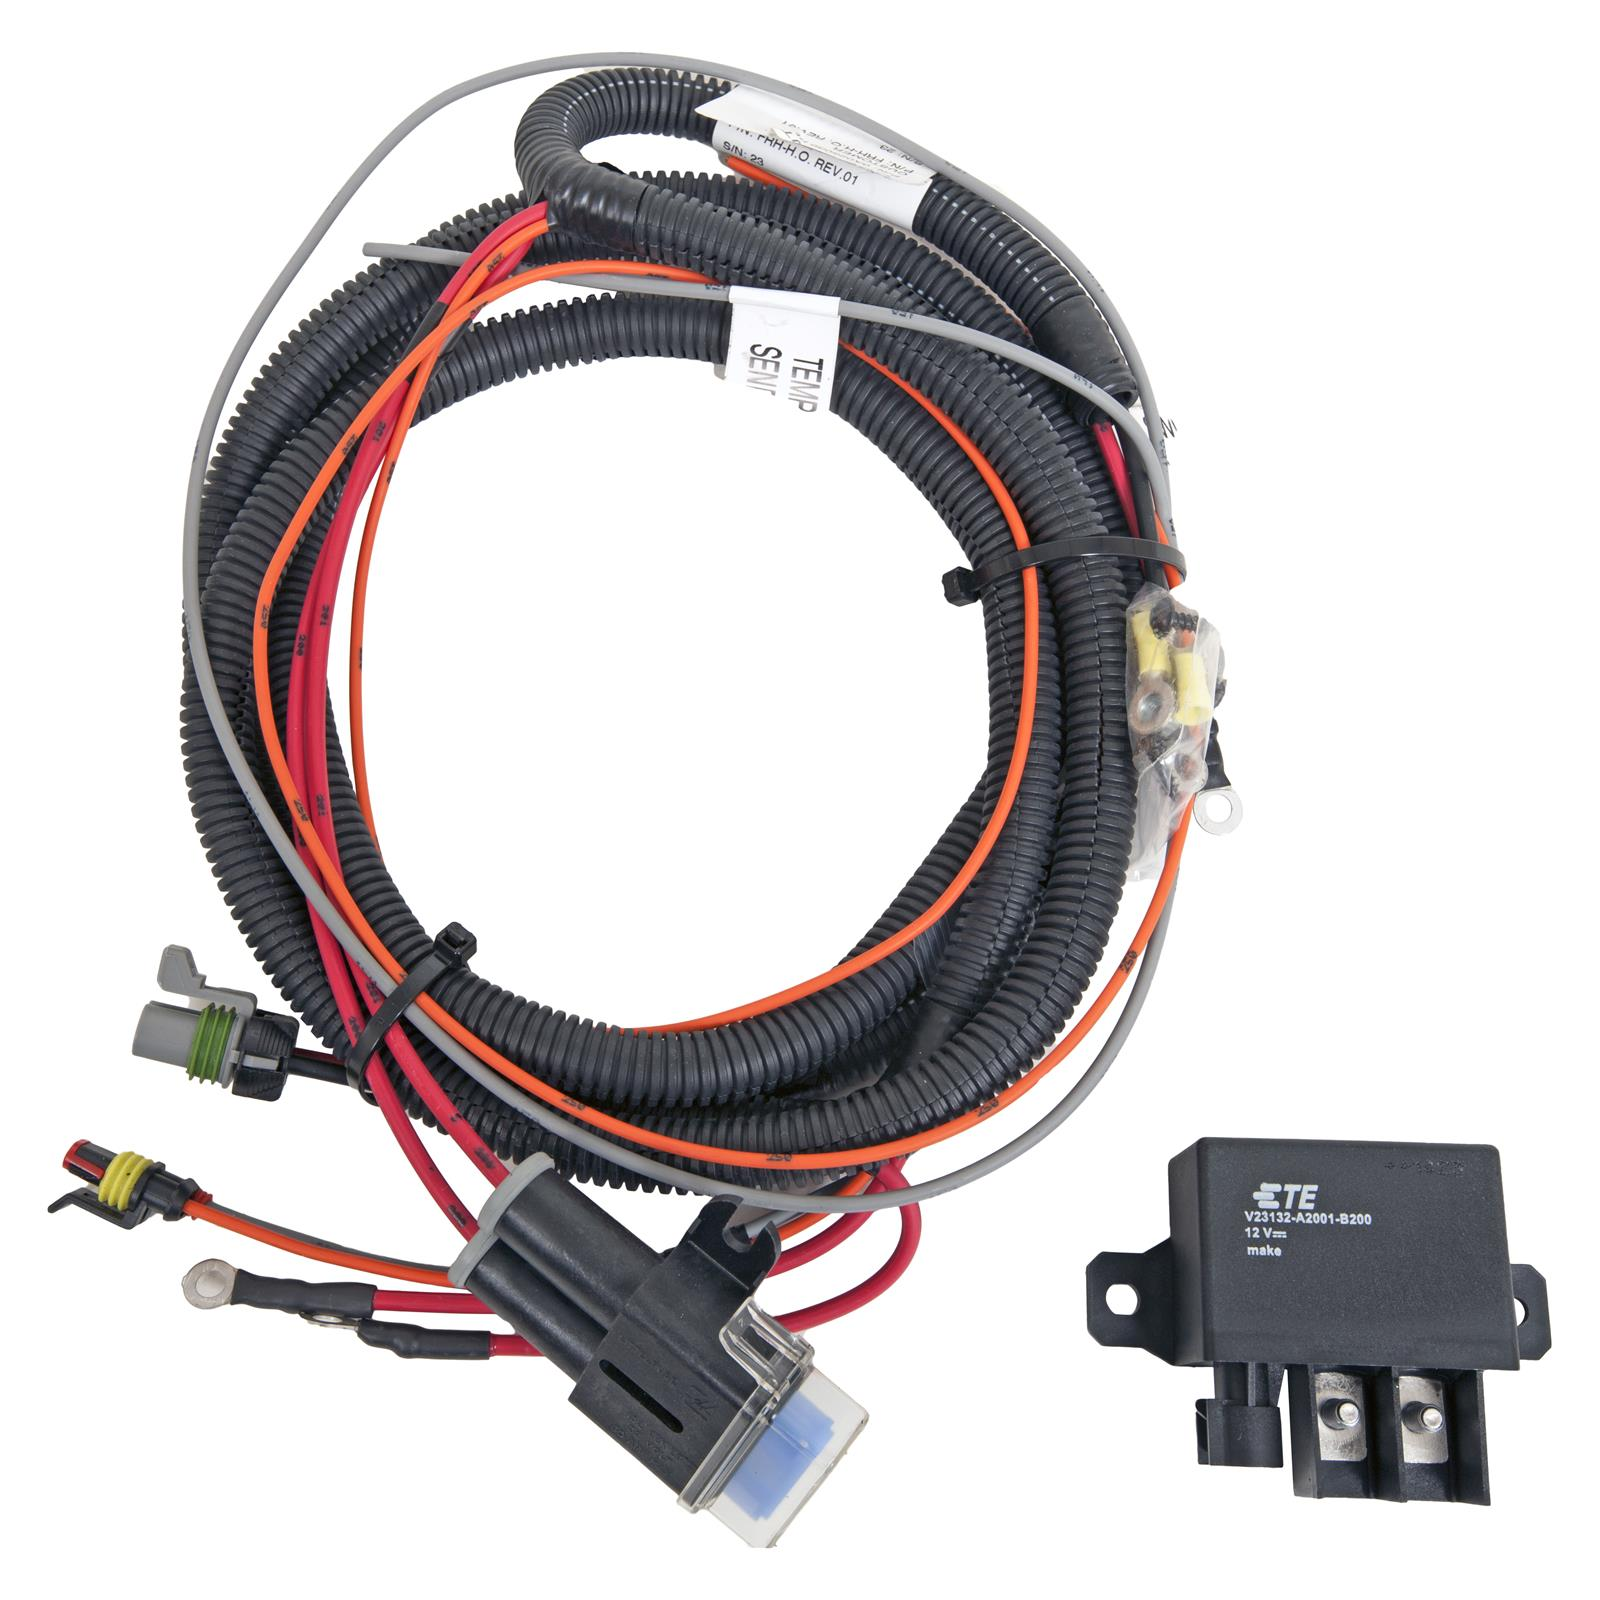 Spal Electric Fan Relay Wiring Kits FRH-HO-KIT - Free Shipping on Orders  Over $49 at Summit Racing